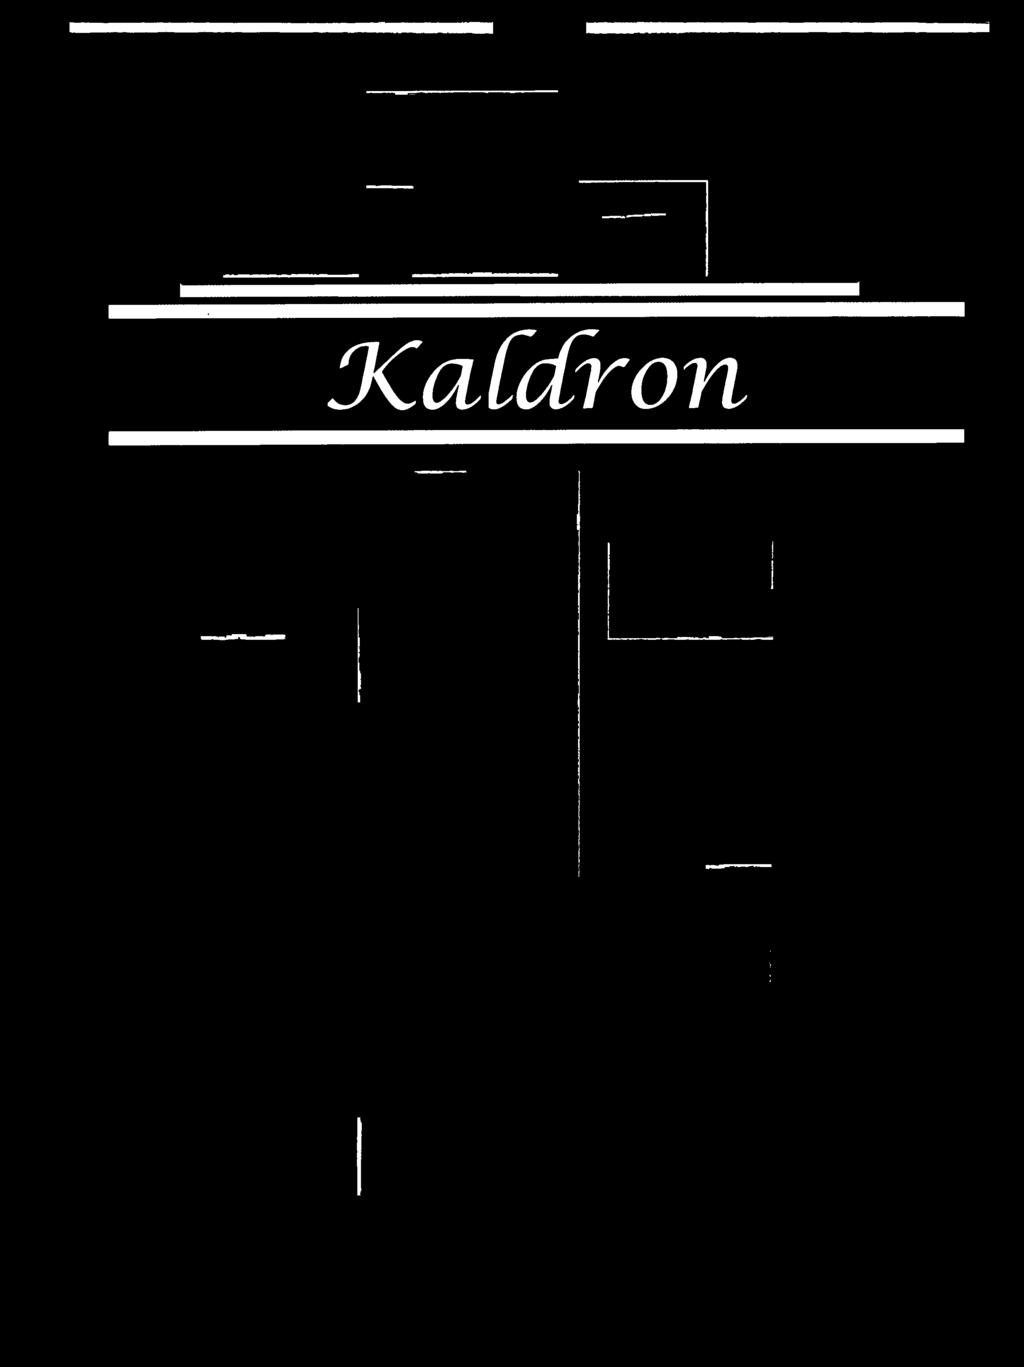 The Kaldron Pdf